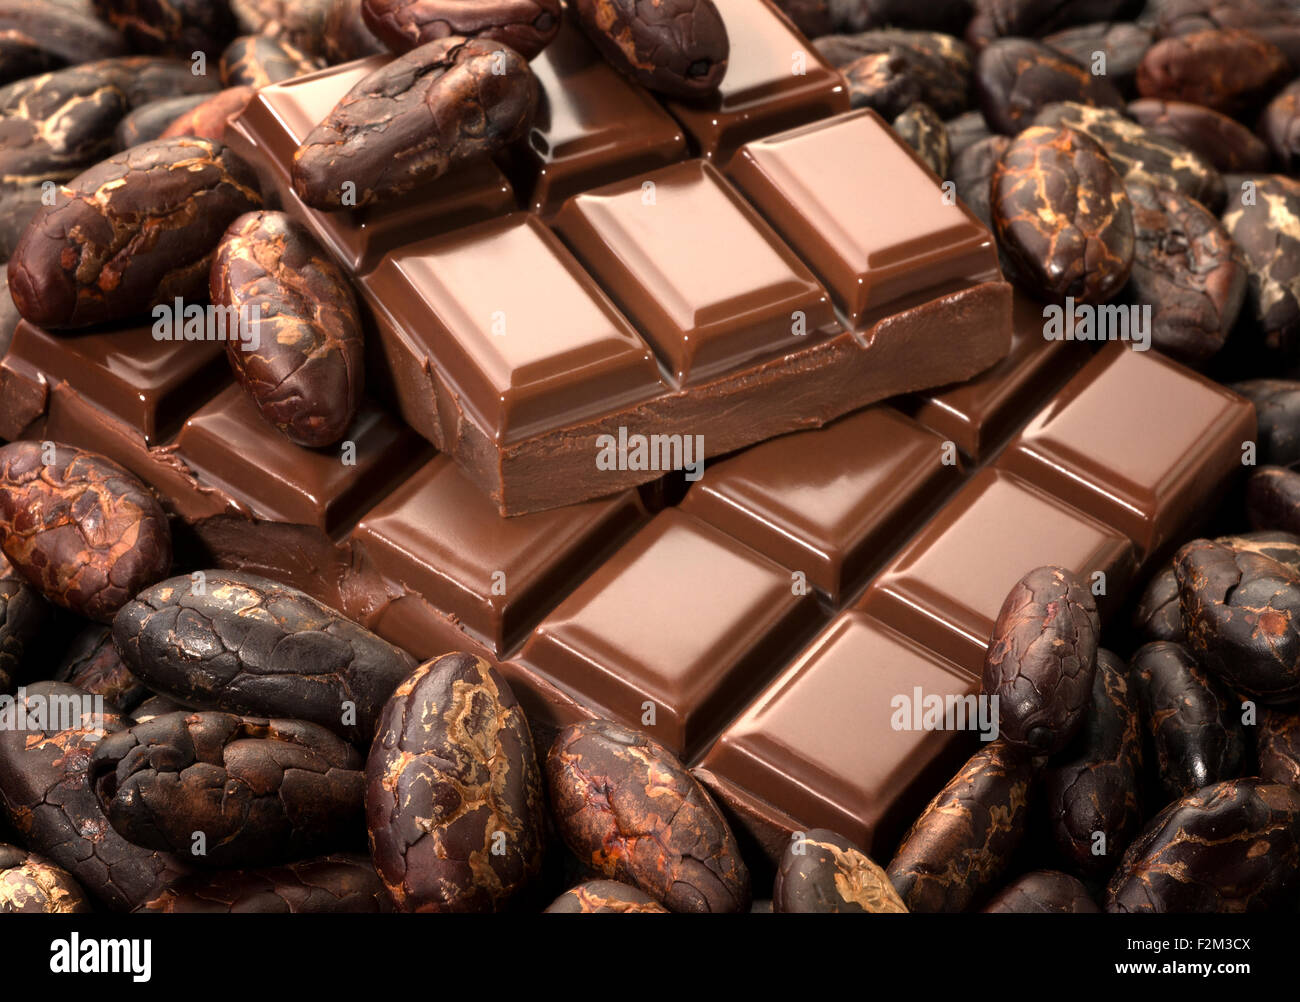 Les fèves de cacao et de chocolat Photo Stock